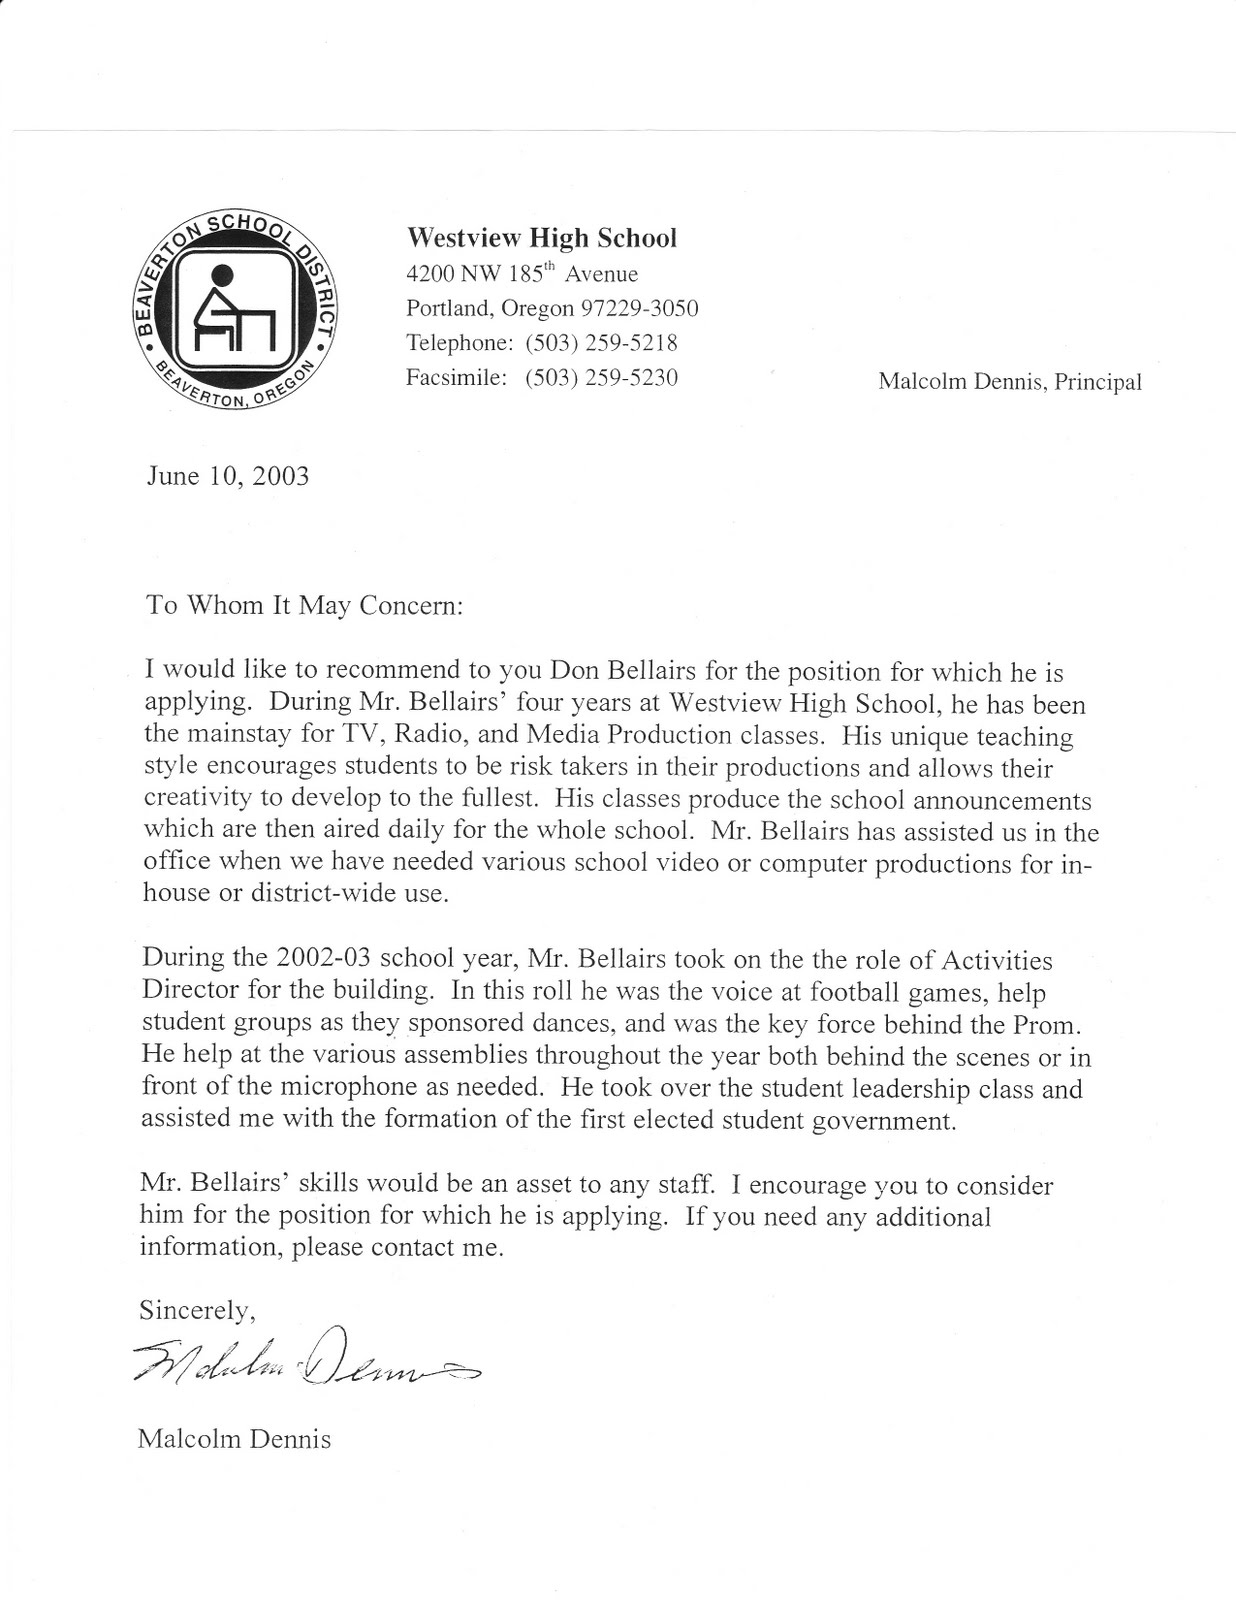 letter of recommendation for school principal position sample letter of recommendation for school principal position letters of recommendation myteacherlife letter of recommendation for teaching